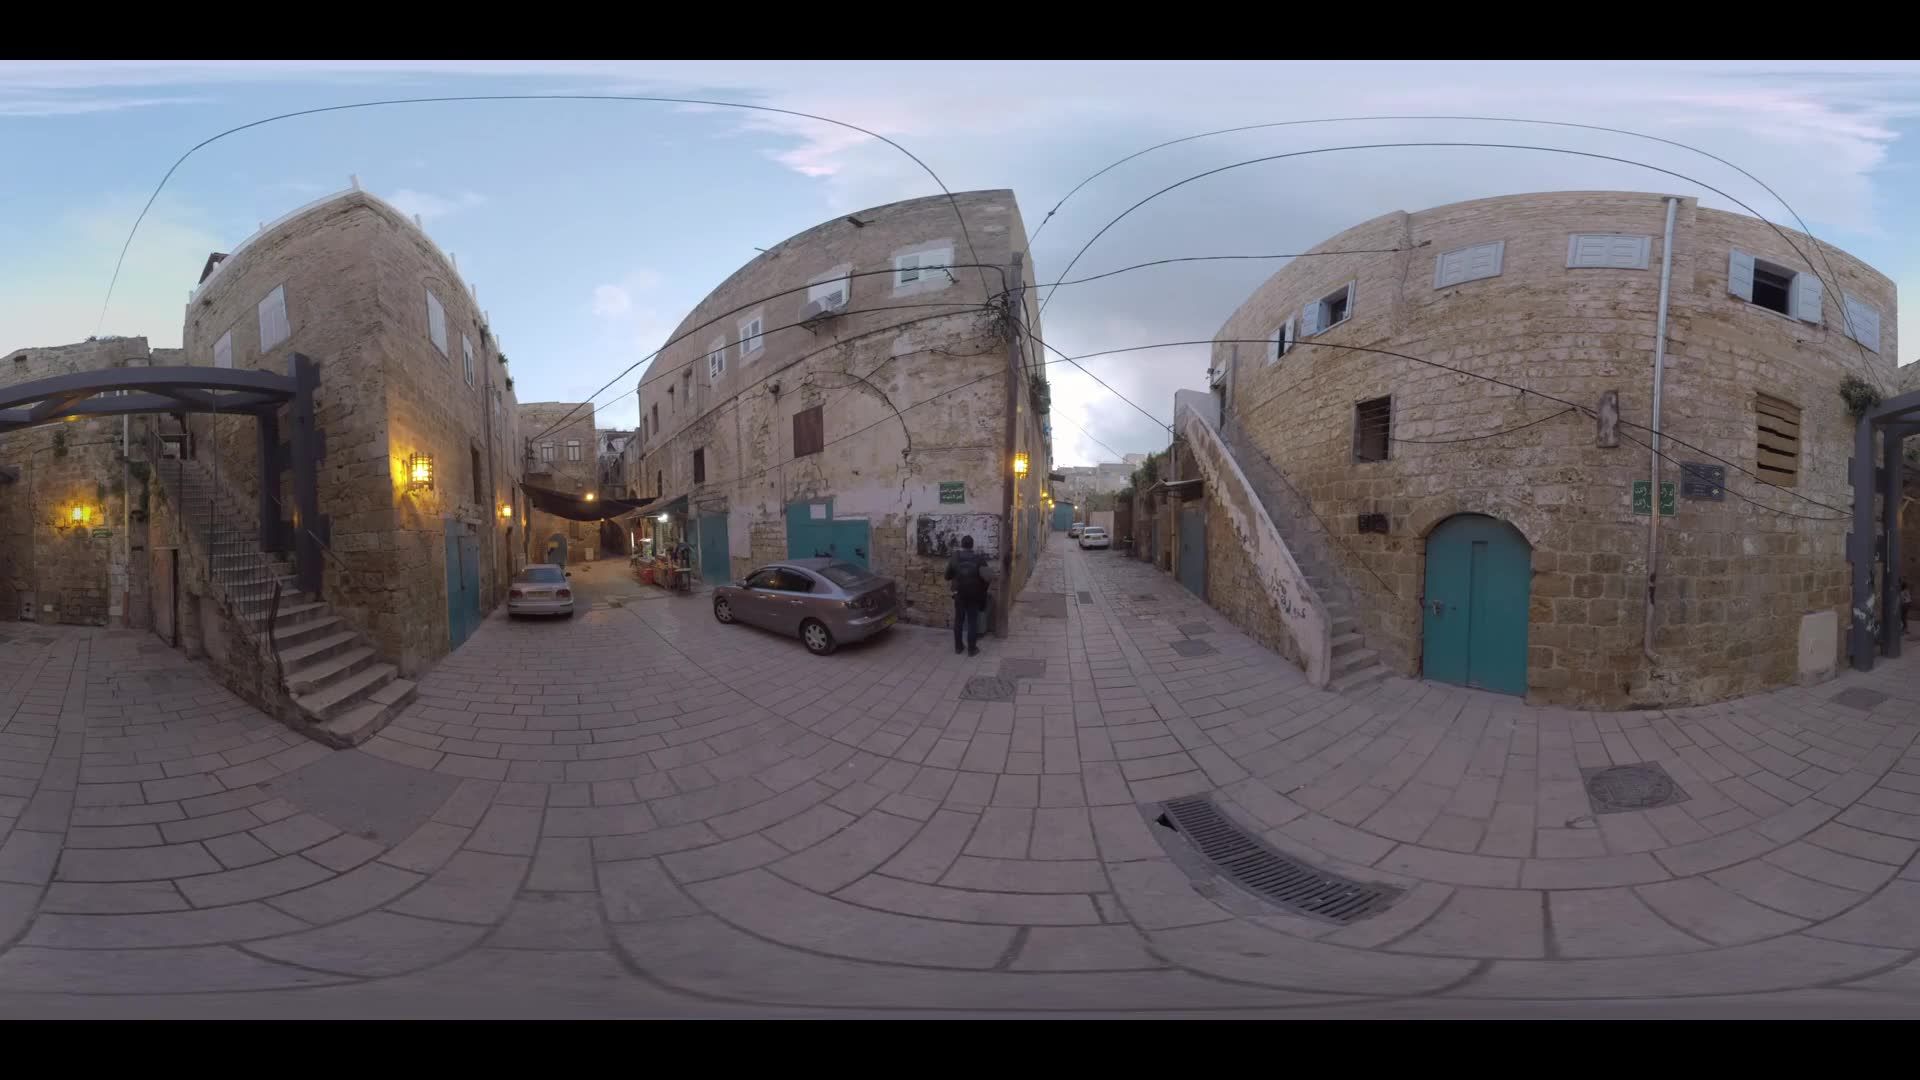 ACRE, ISRAEL - MARCH 13, 2017: 360 VR video. Evening view of narrow street with old stone houses, several cars and vendor. One of the world oldest cities, continuously inhabited since the Middle Bronze Age some 4000 years ago